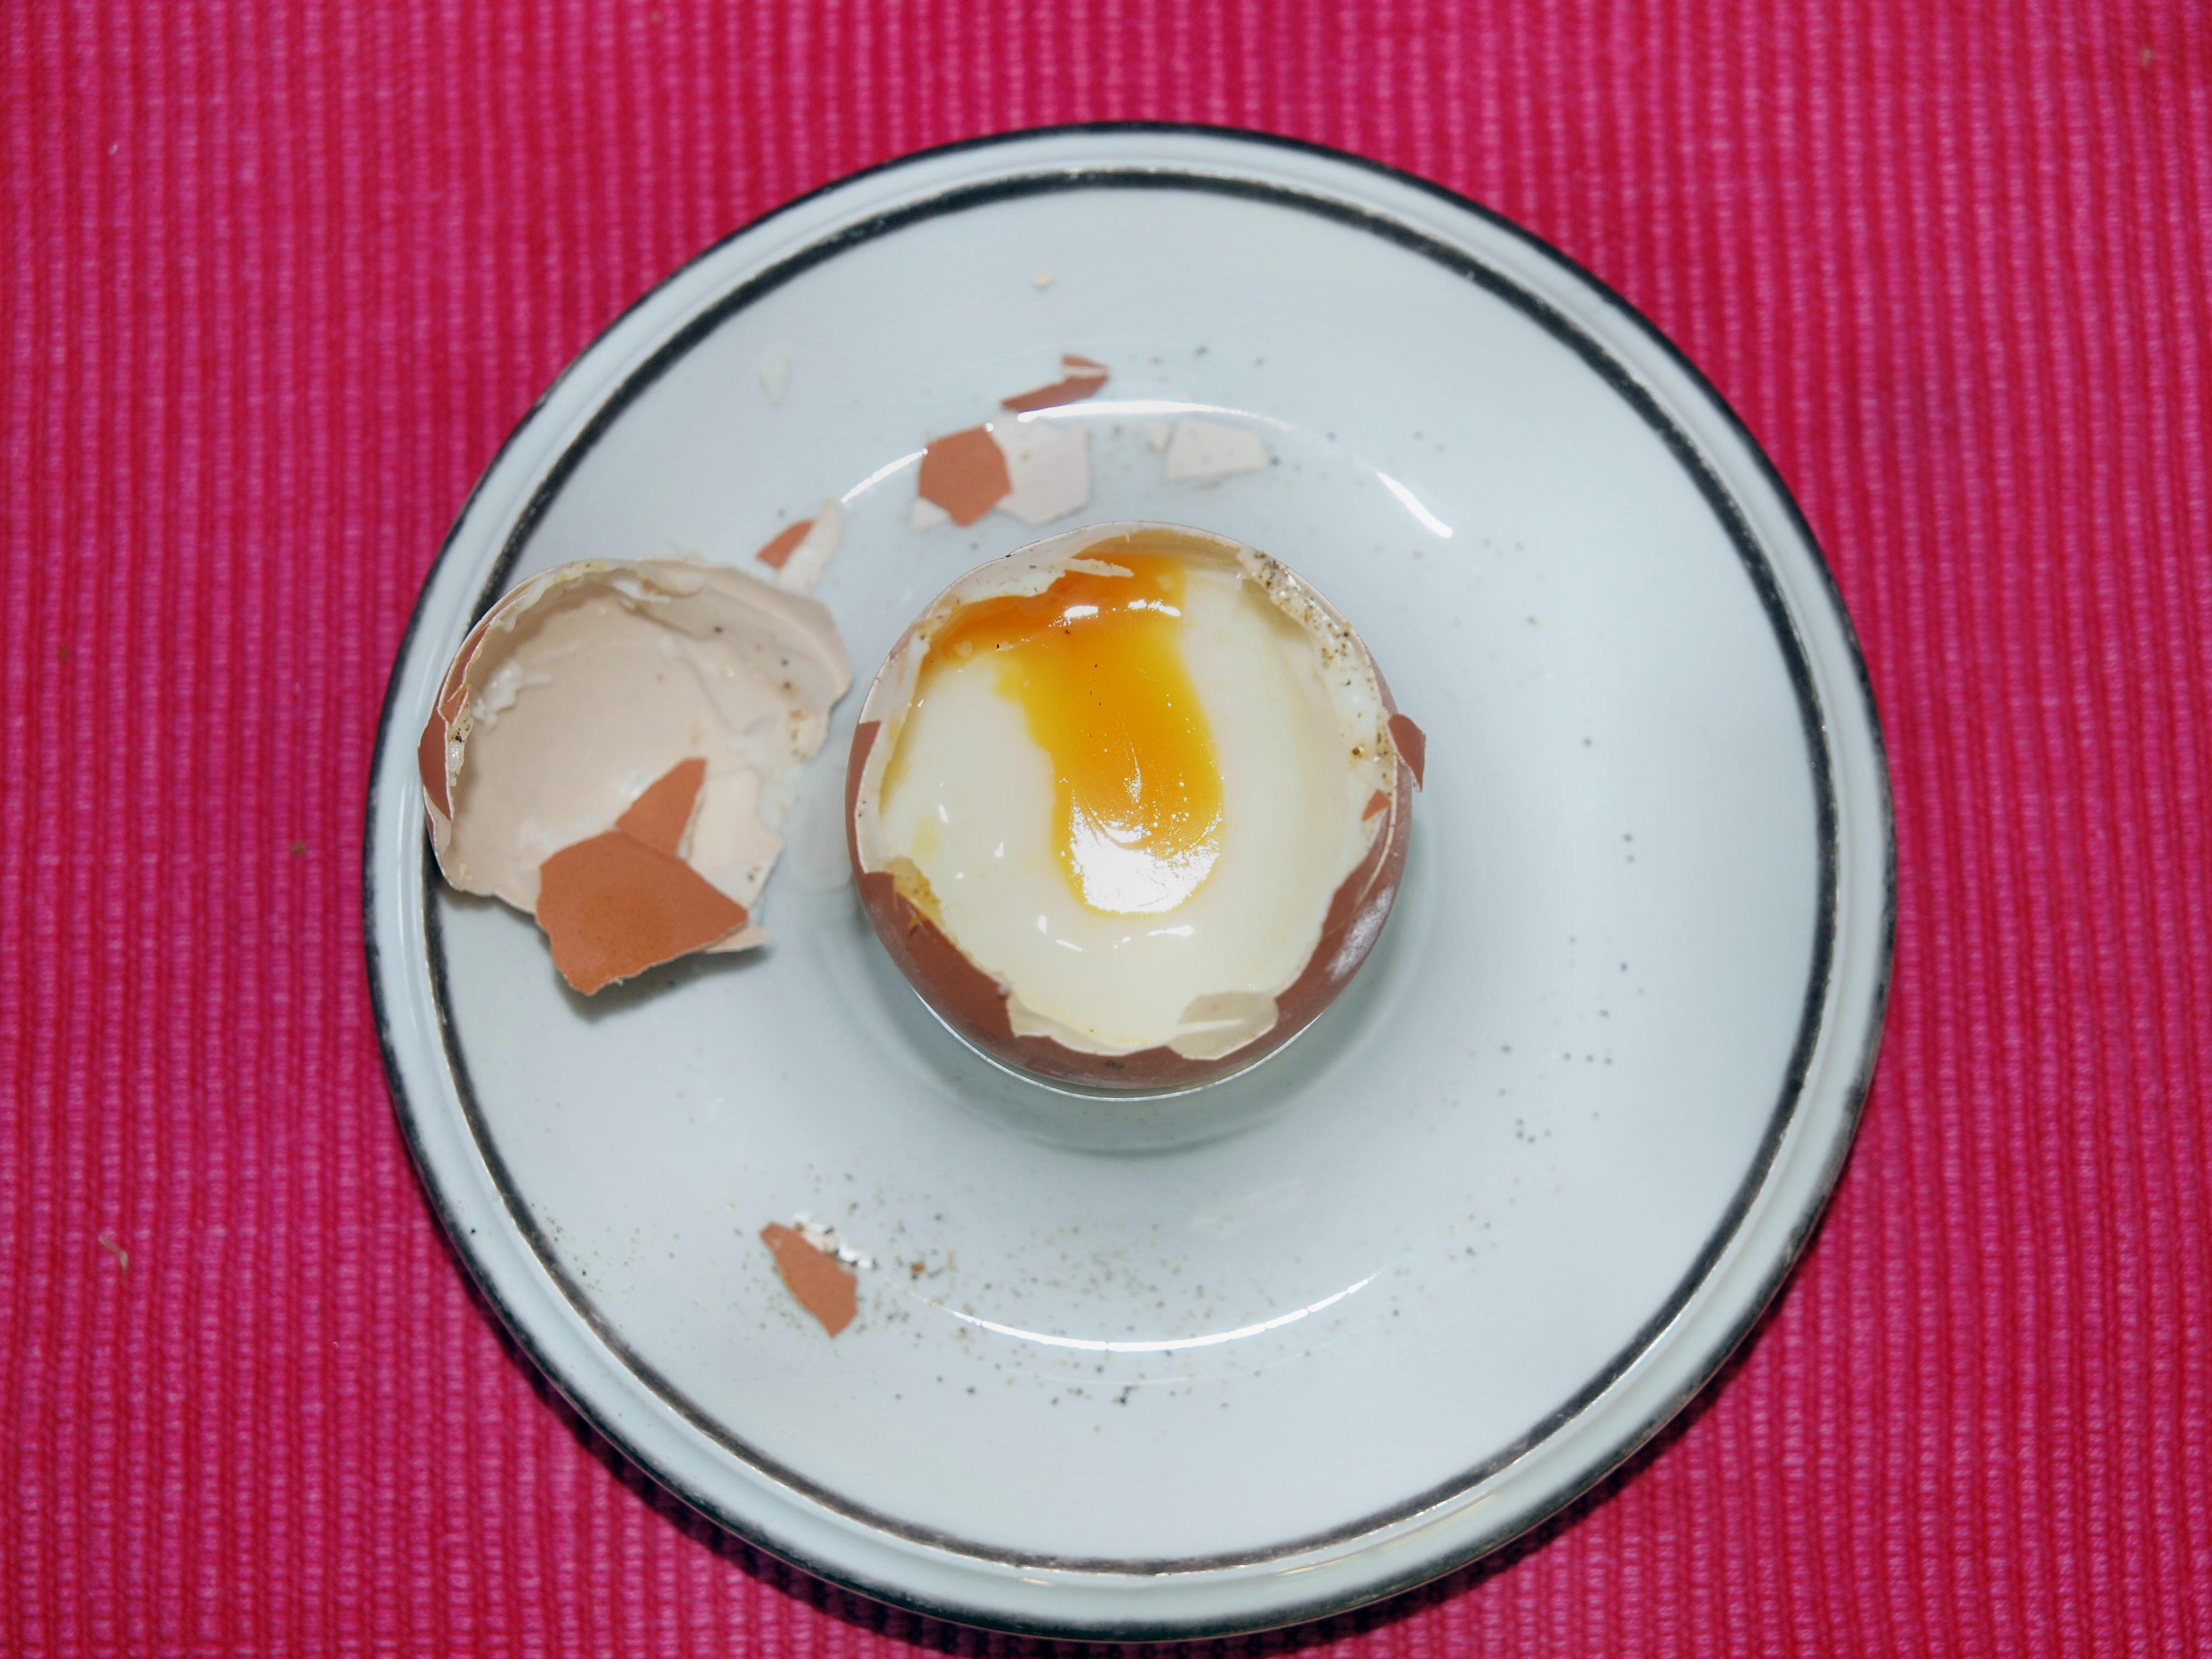 This should be Eccentric-egg-3.jpeg.  Is it missing?